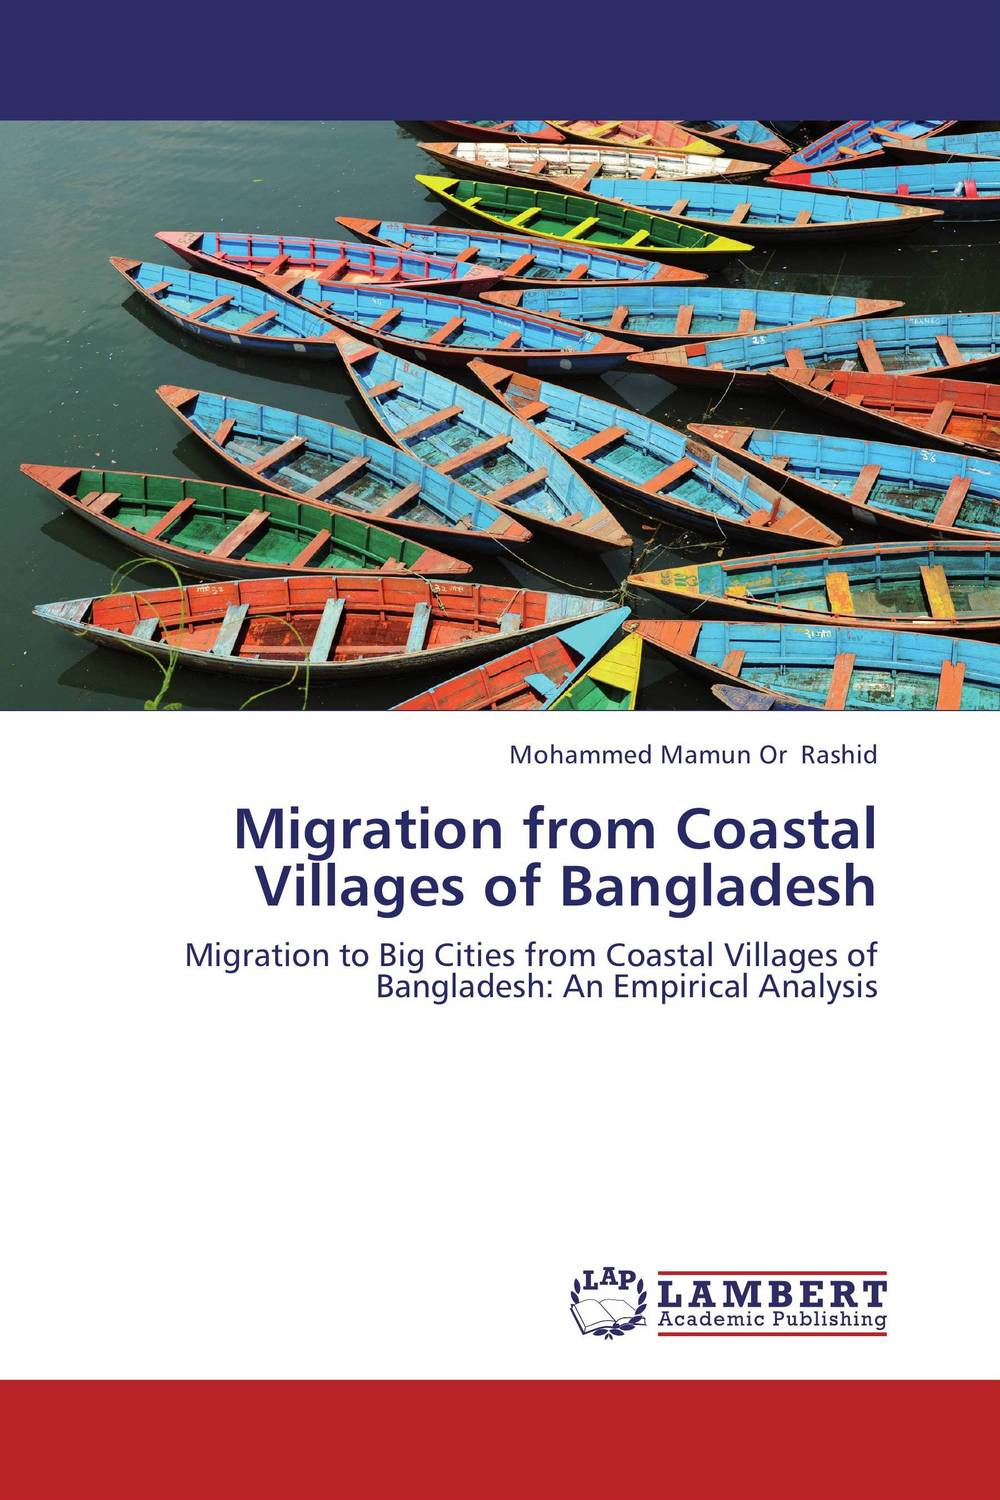 Migration from Coastal Villages of Bangladesh